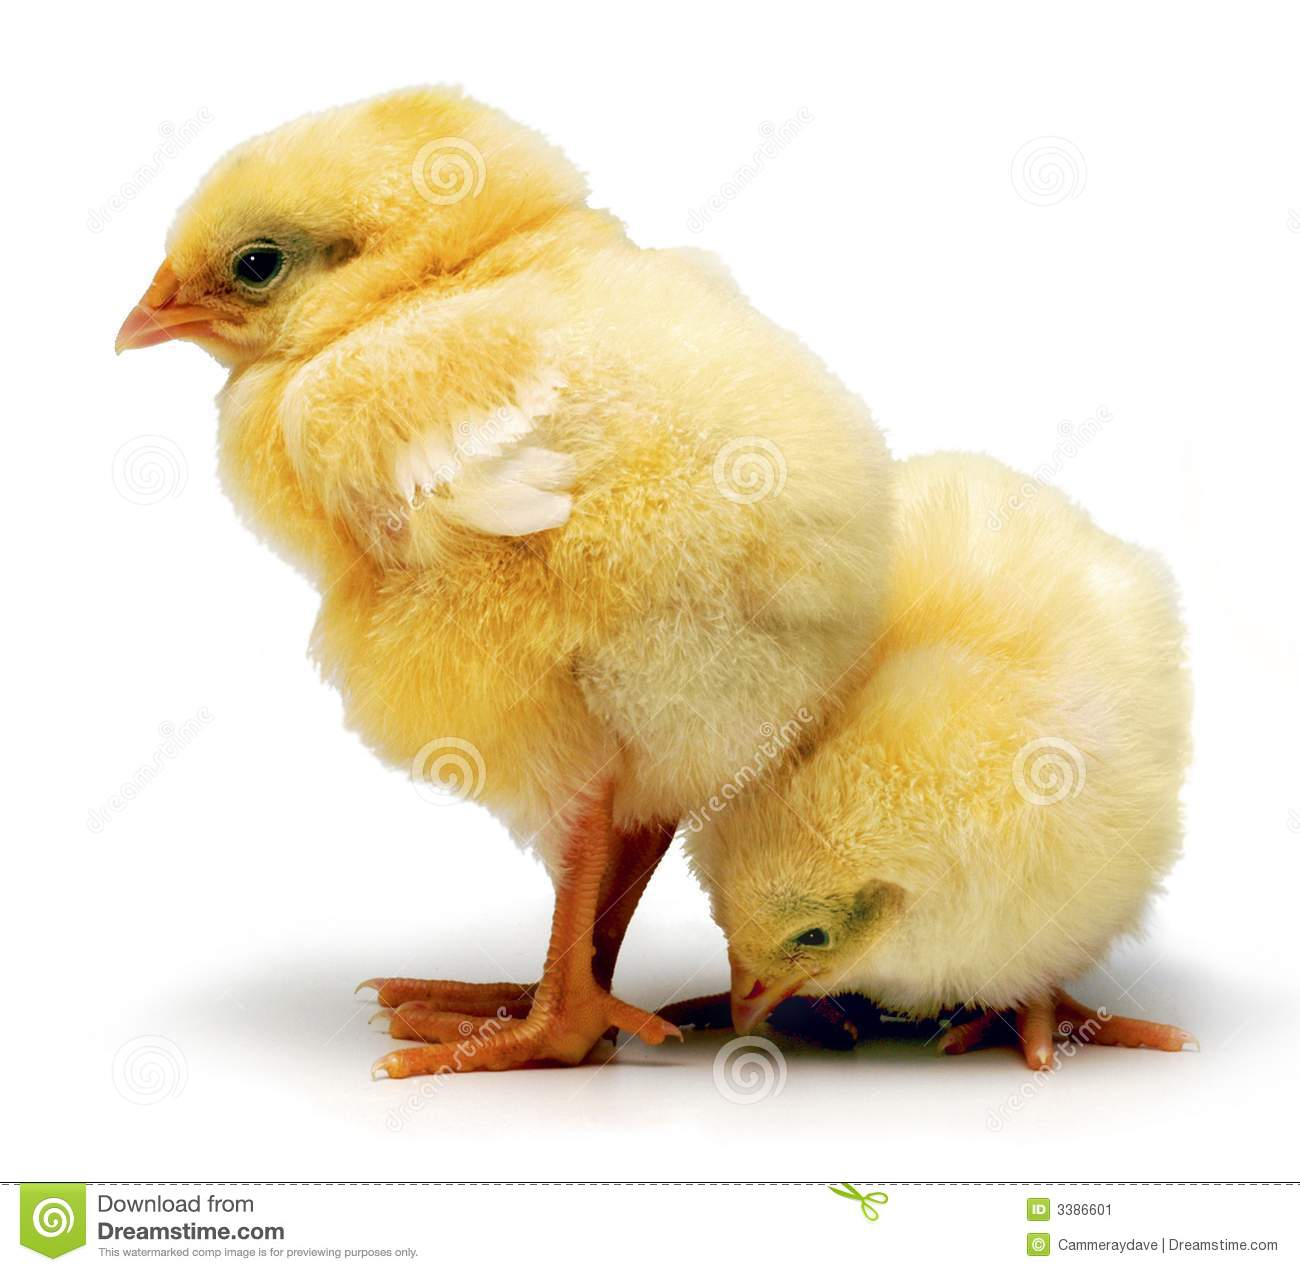 Baby Chickens Chicks Stock Image - Image: 3386601